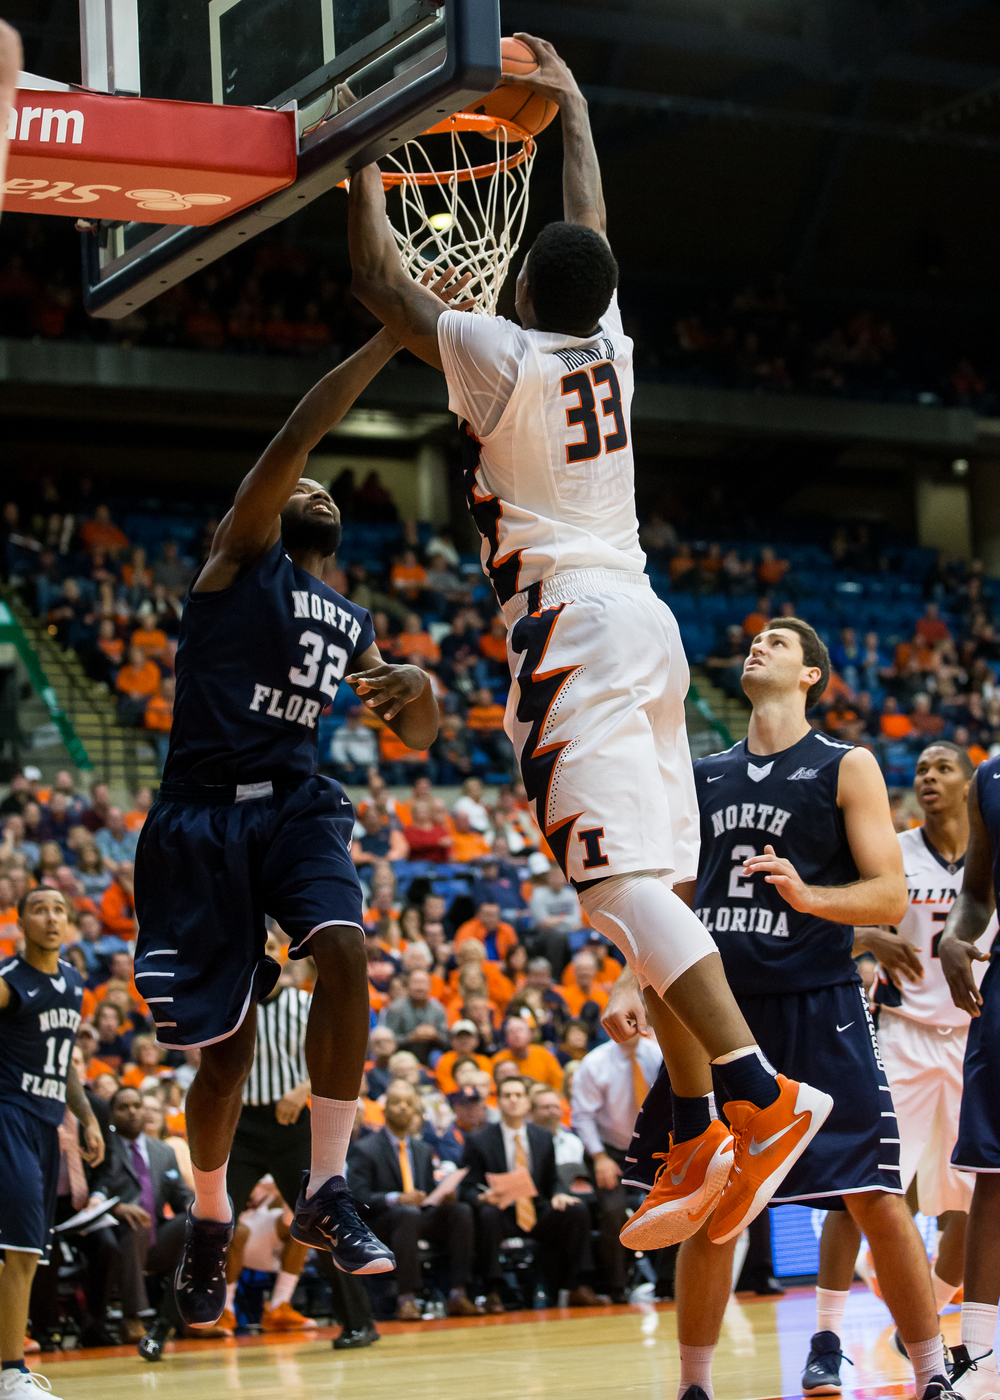 University of Illinois' Mike Thorne Jr. (33) throws down a dunk over University of North Florida's Demarcus Daniels (32) in the second half at the Prairie Capital Convention Center, Friday, Nov. 13, 2015, in Springfield, Ill. Justin L. Fowler/The State Journal-Register